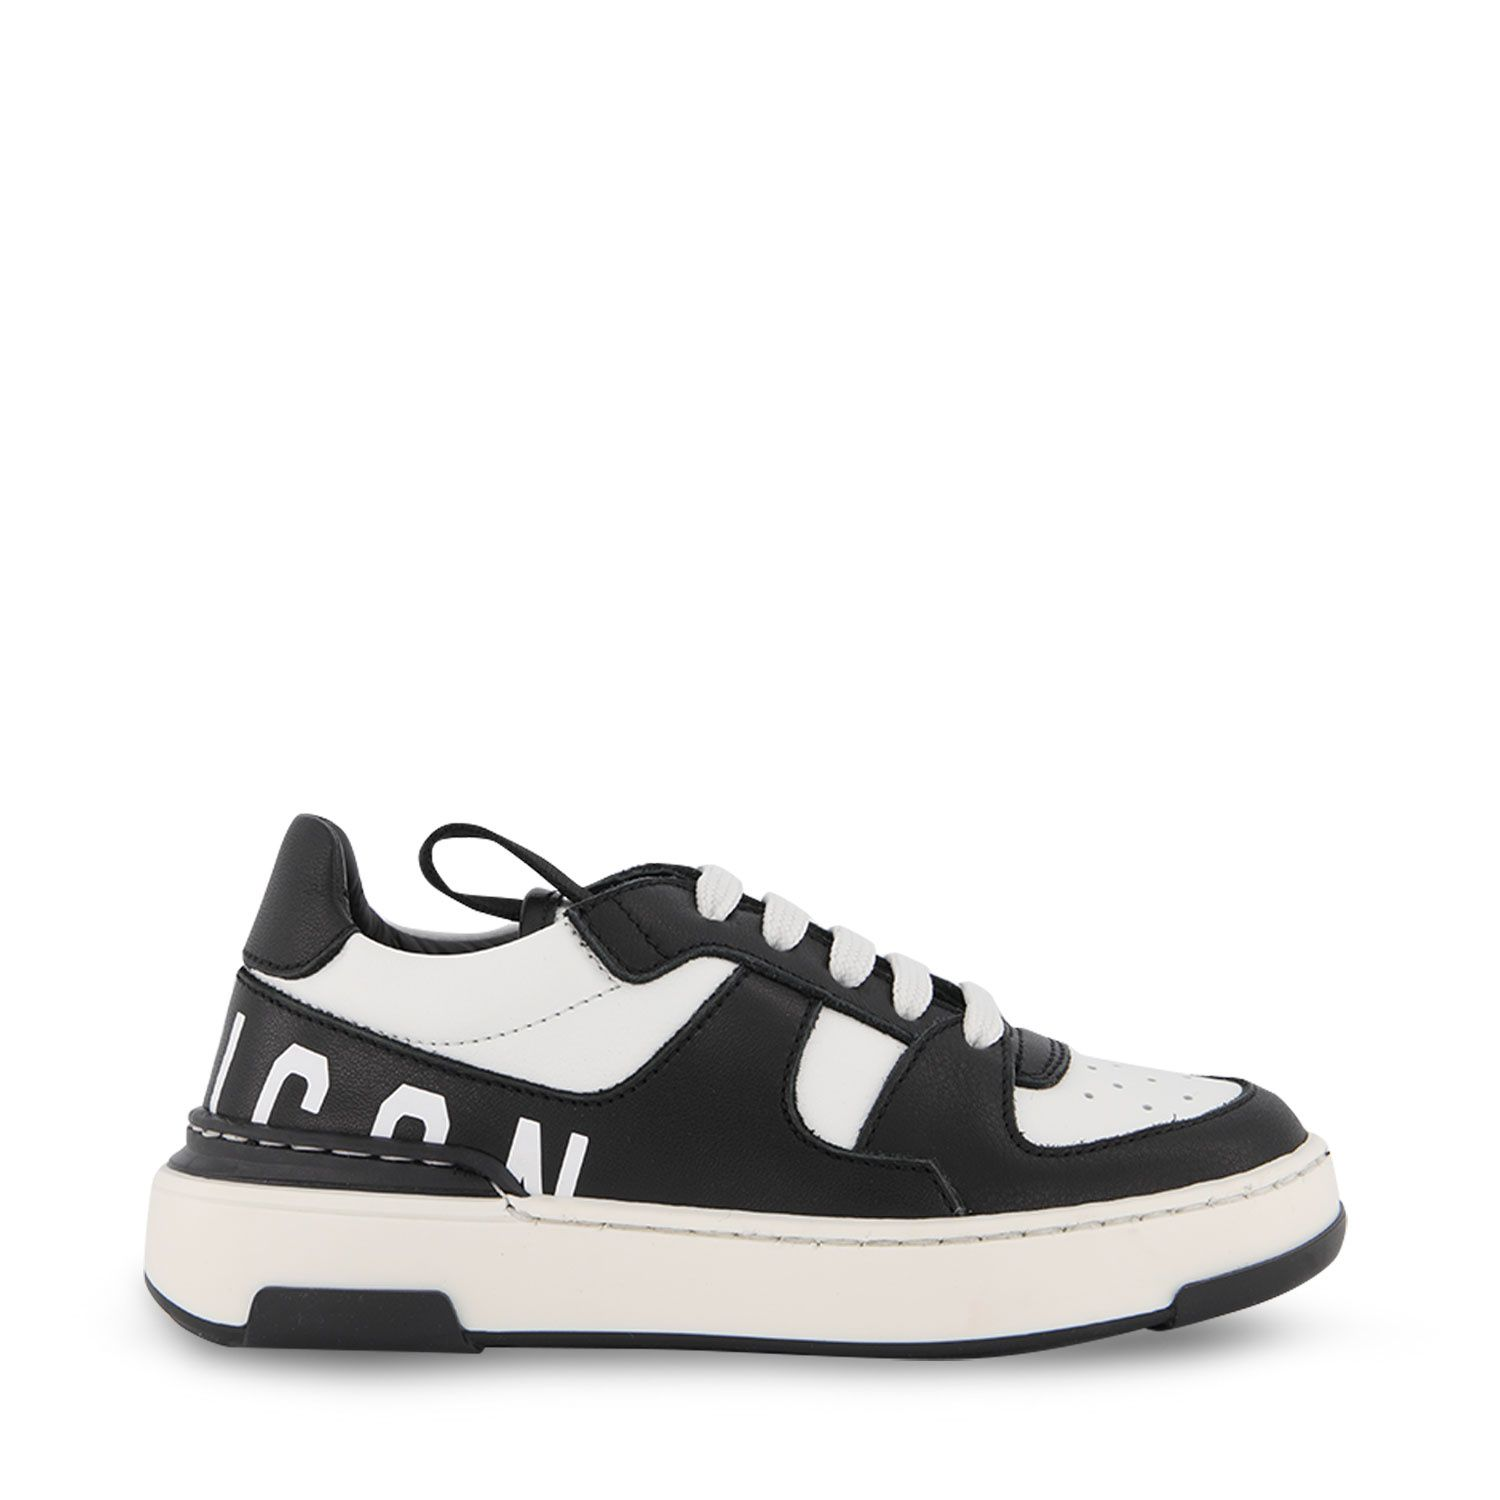 Picture of Dsquared2 68666 kids sneakers black